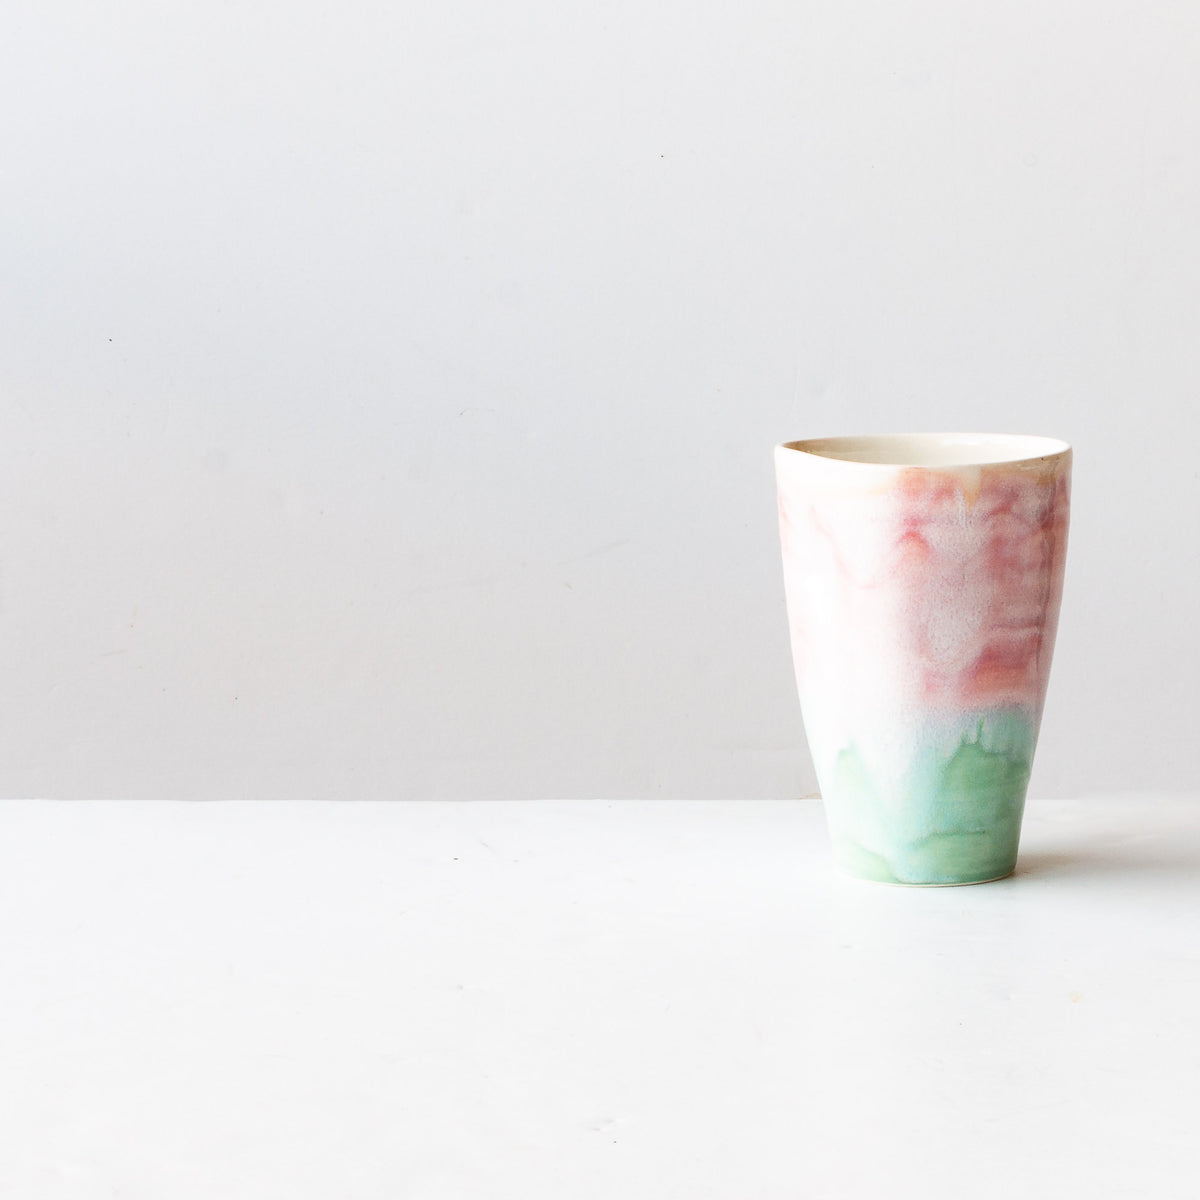 Handcrafted Large Ergonomic Tumbler - Watercolor - Sold by Chic & Basta